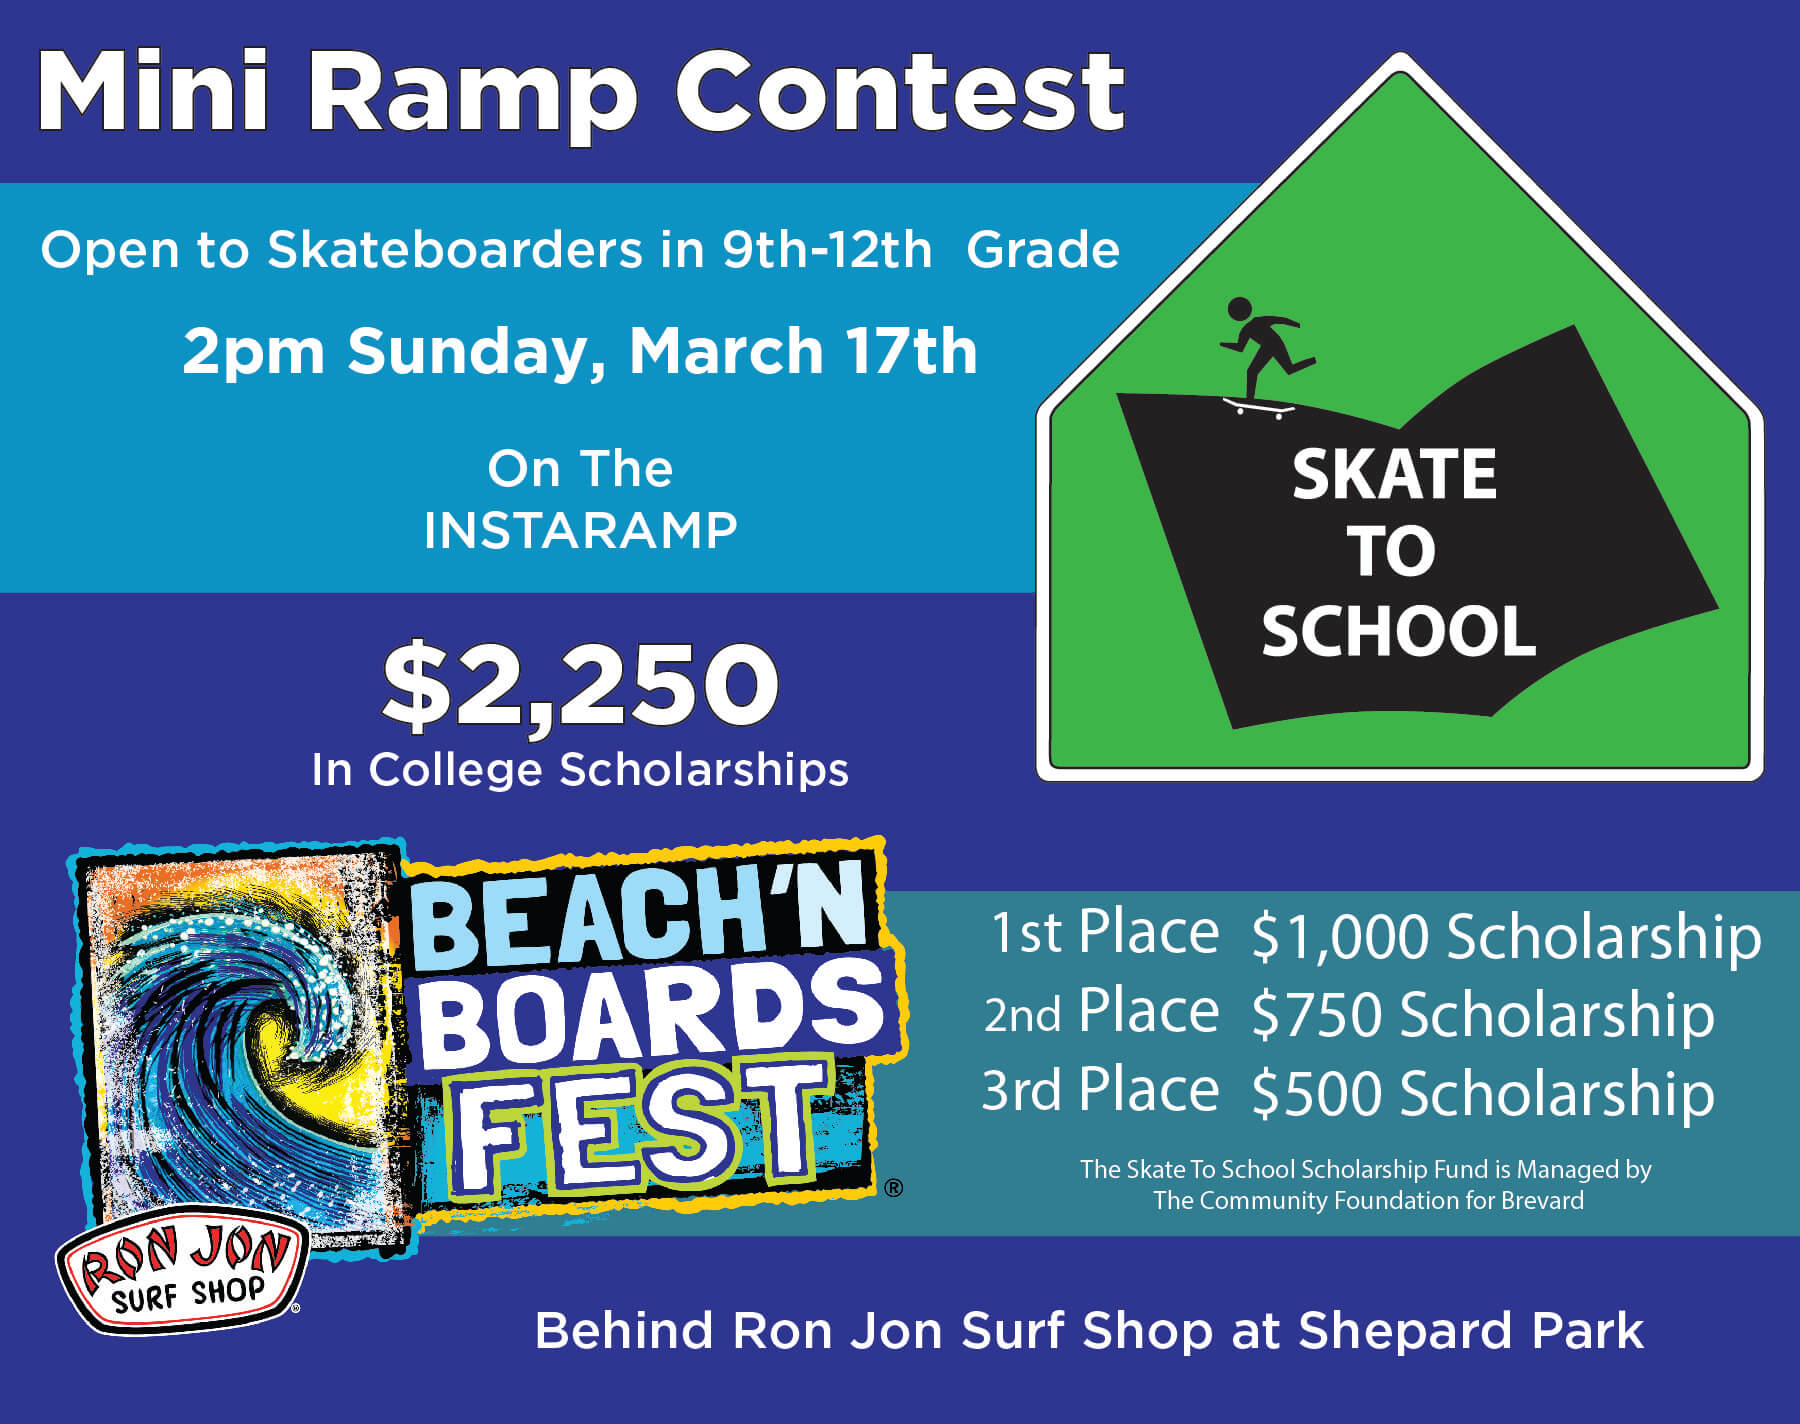 4bff14f20c3 Beach boards fest brought to you ron jon surf shop jpg 1800x1424 Vans  quiksilver skateboarding competition